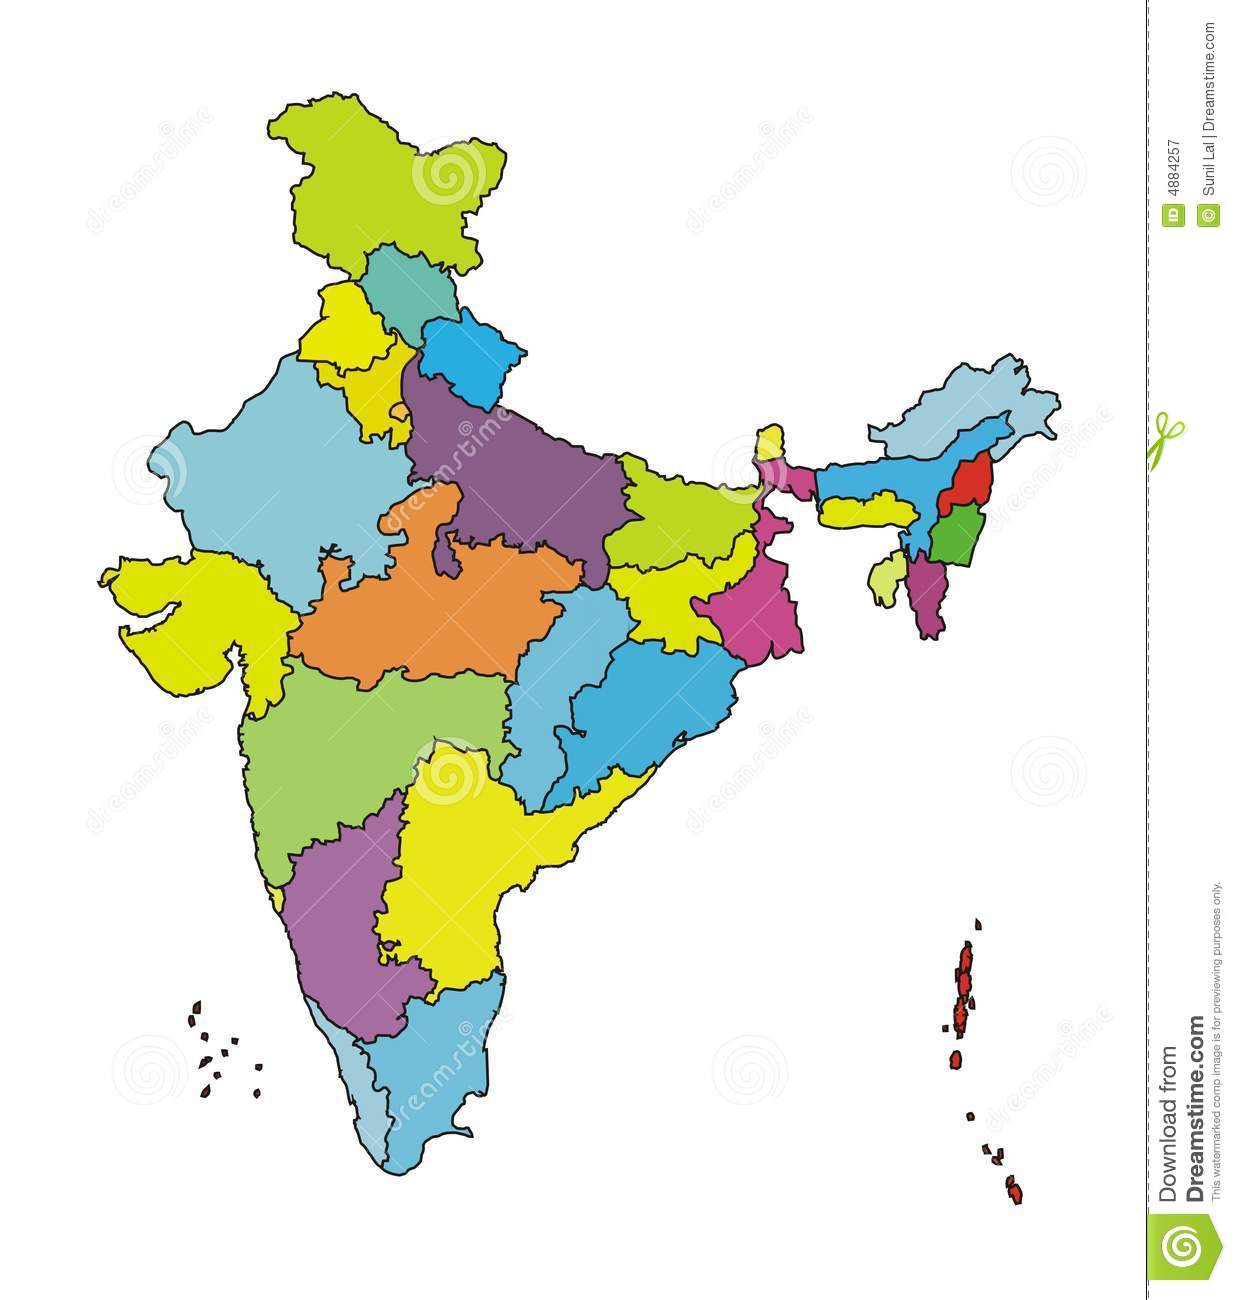 India political map in a4 size.